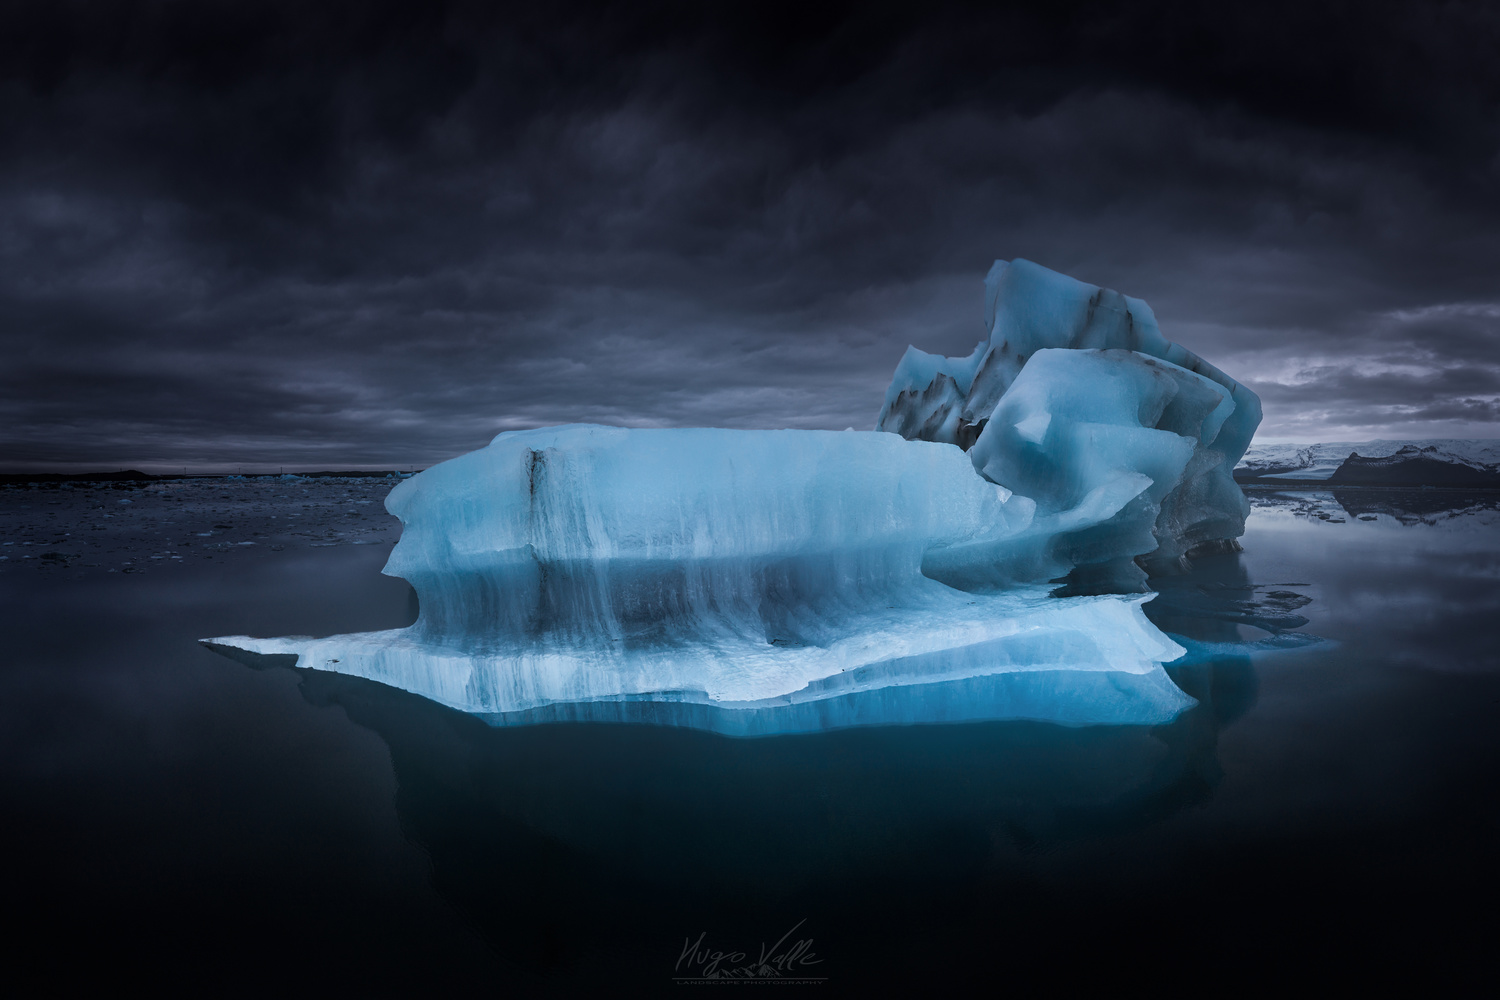 This Ice! by Hugo Valle